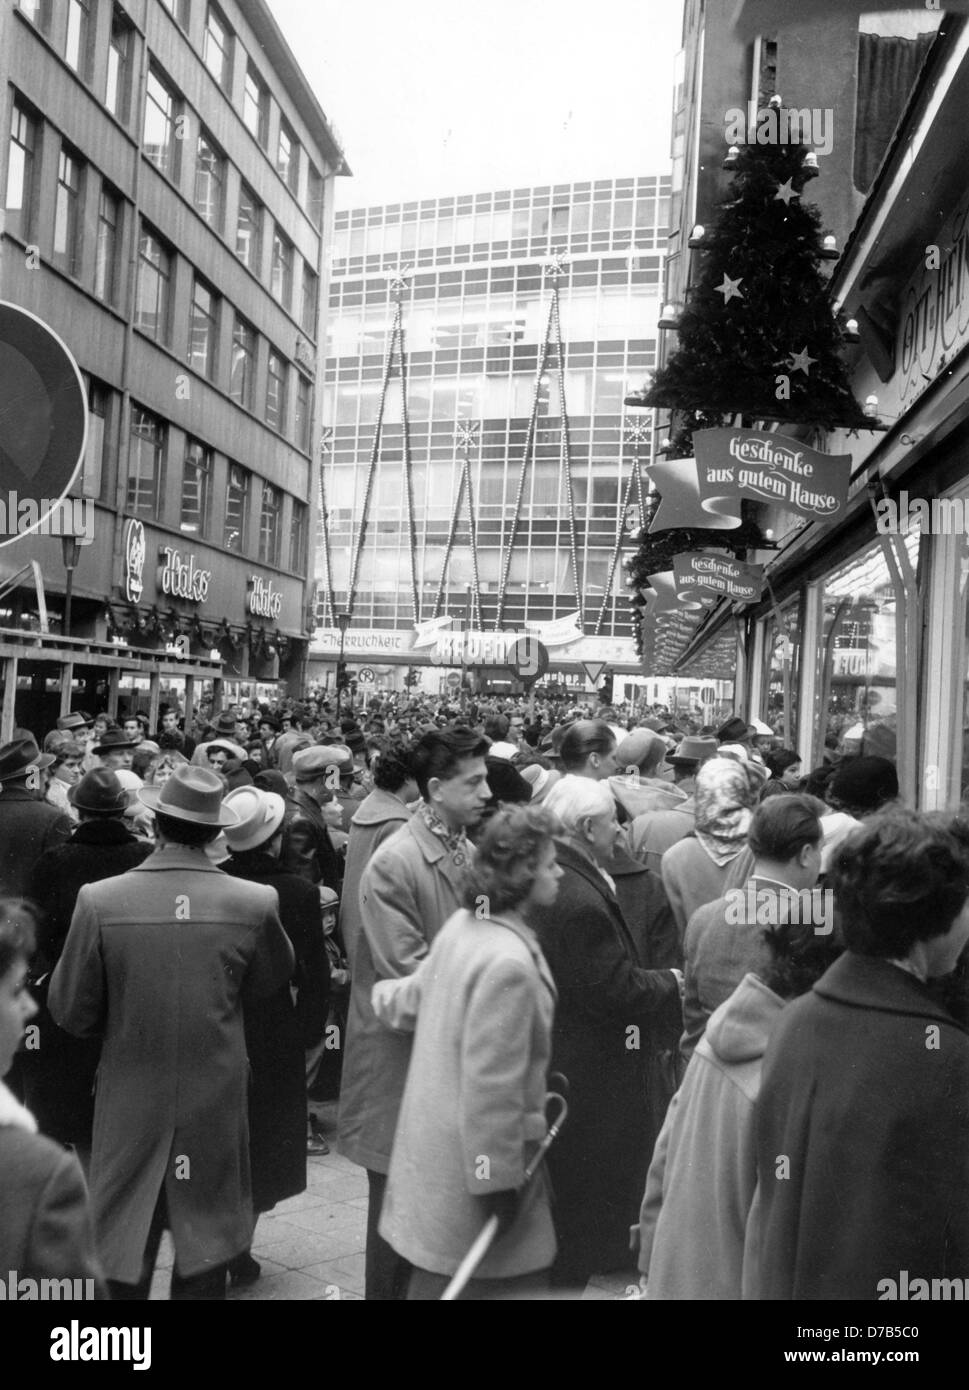 Masses of people crowd in front of shops in a side street of shopping street Zeil near Hauptwache in Frankfurt am Main on Sunday, the 14th of December in 1958.    Photo: Richard Kroll  +++(c) dpa - Report+++ Stock Photo